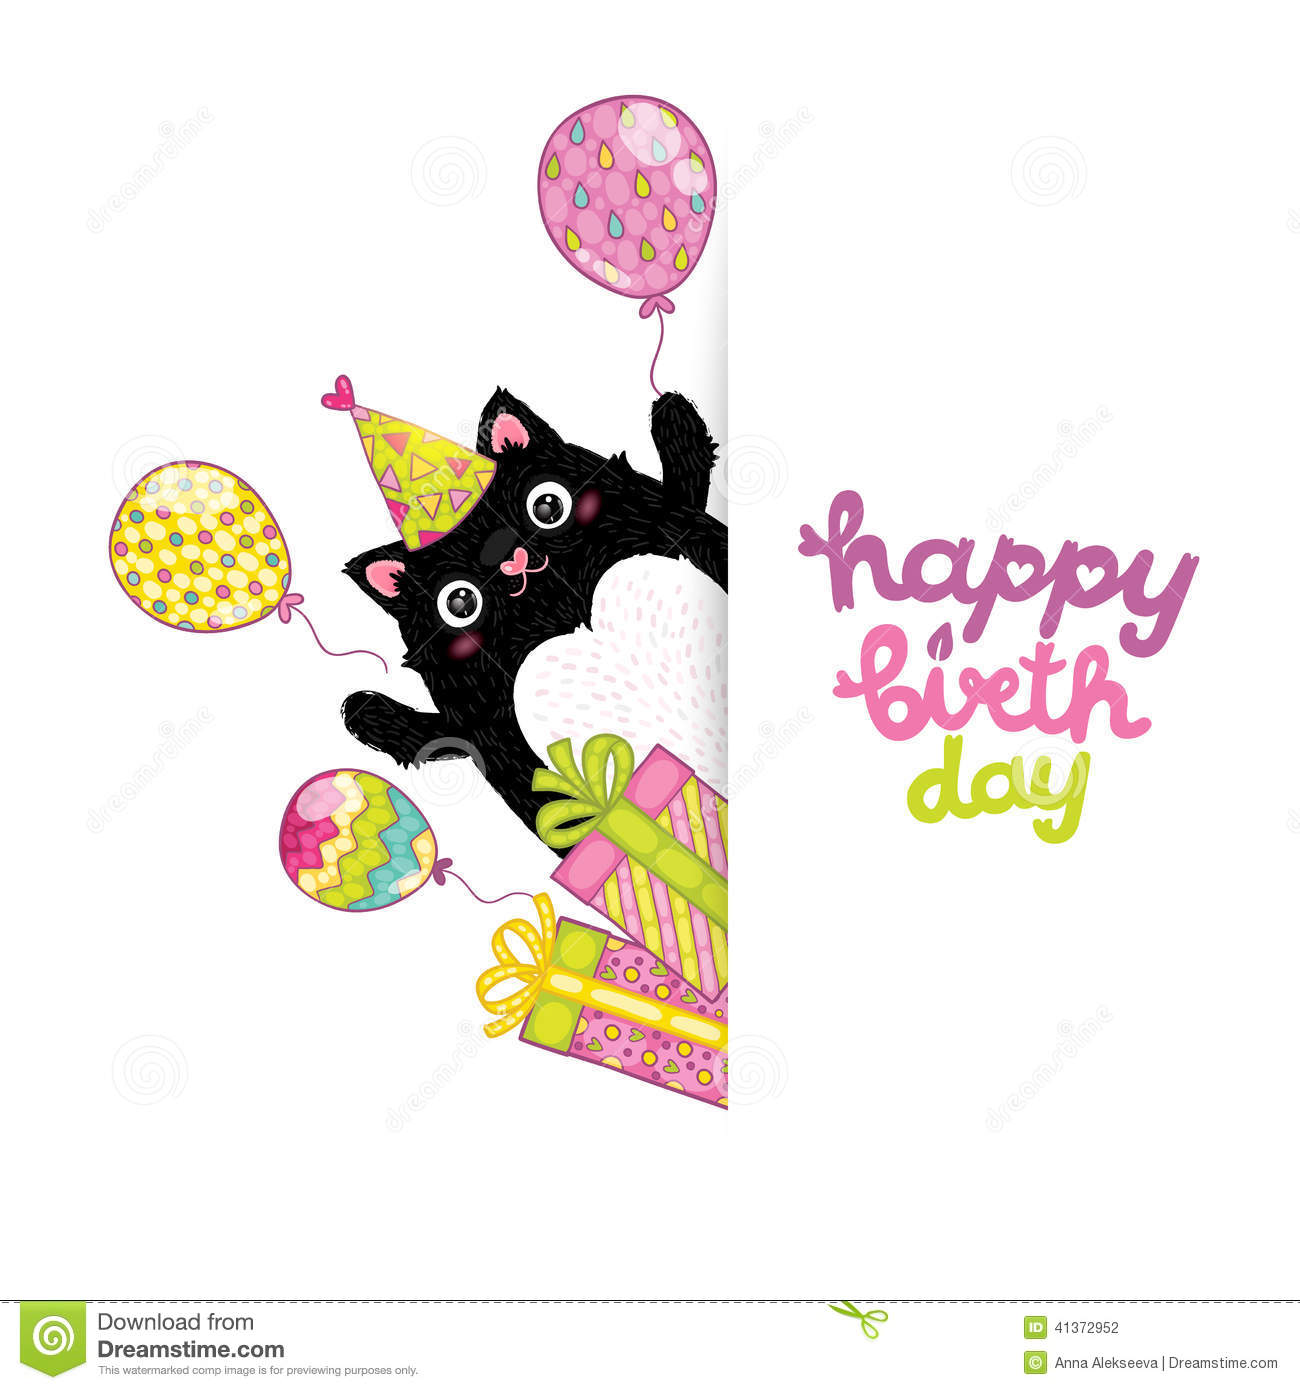 happy-birt​hday-card-​background​-cat-vecto​r-holiday-​party-temp​late-41372​952